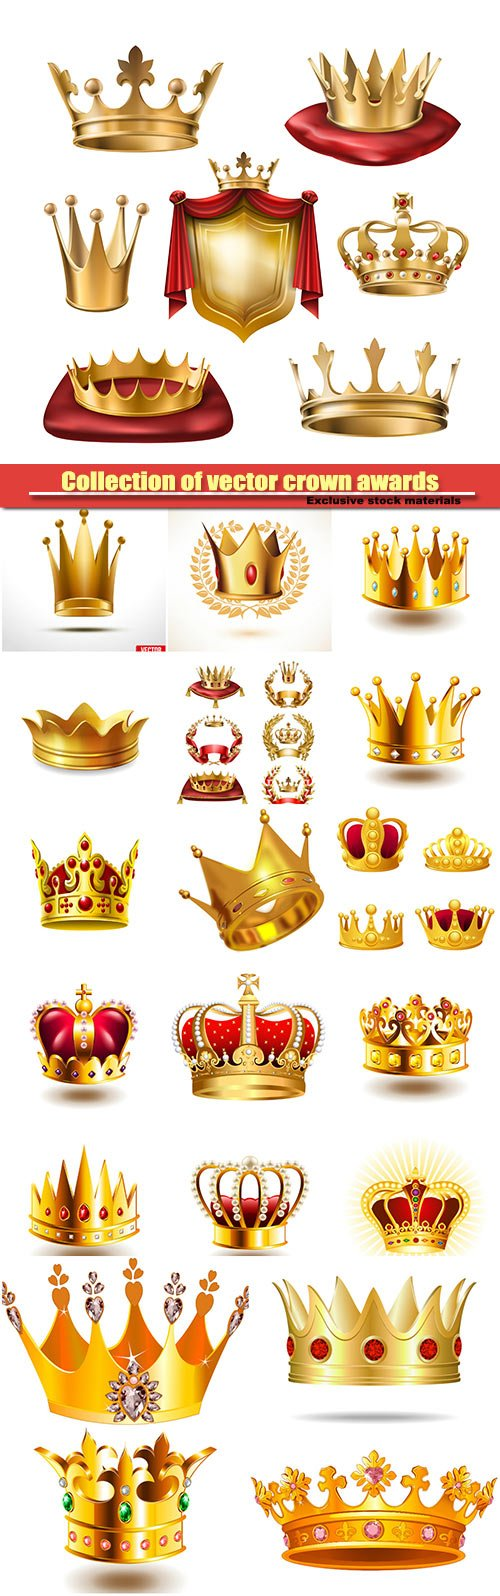 Collection of vector crown awards for winners of competitions, design elements for a label, certificate, diploma